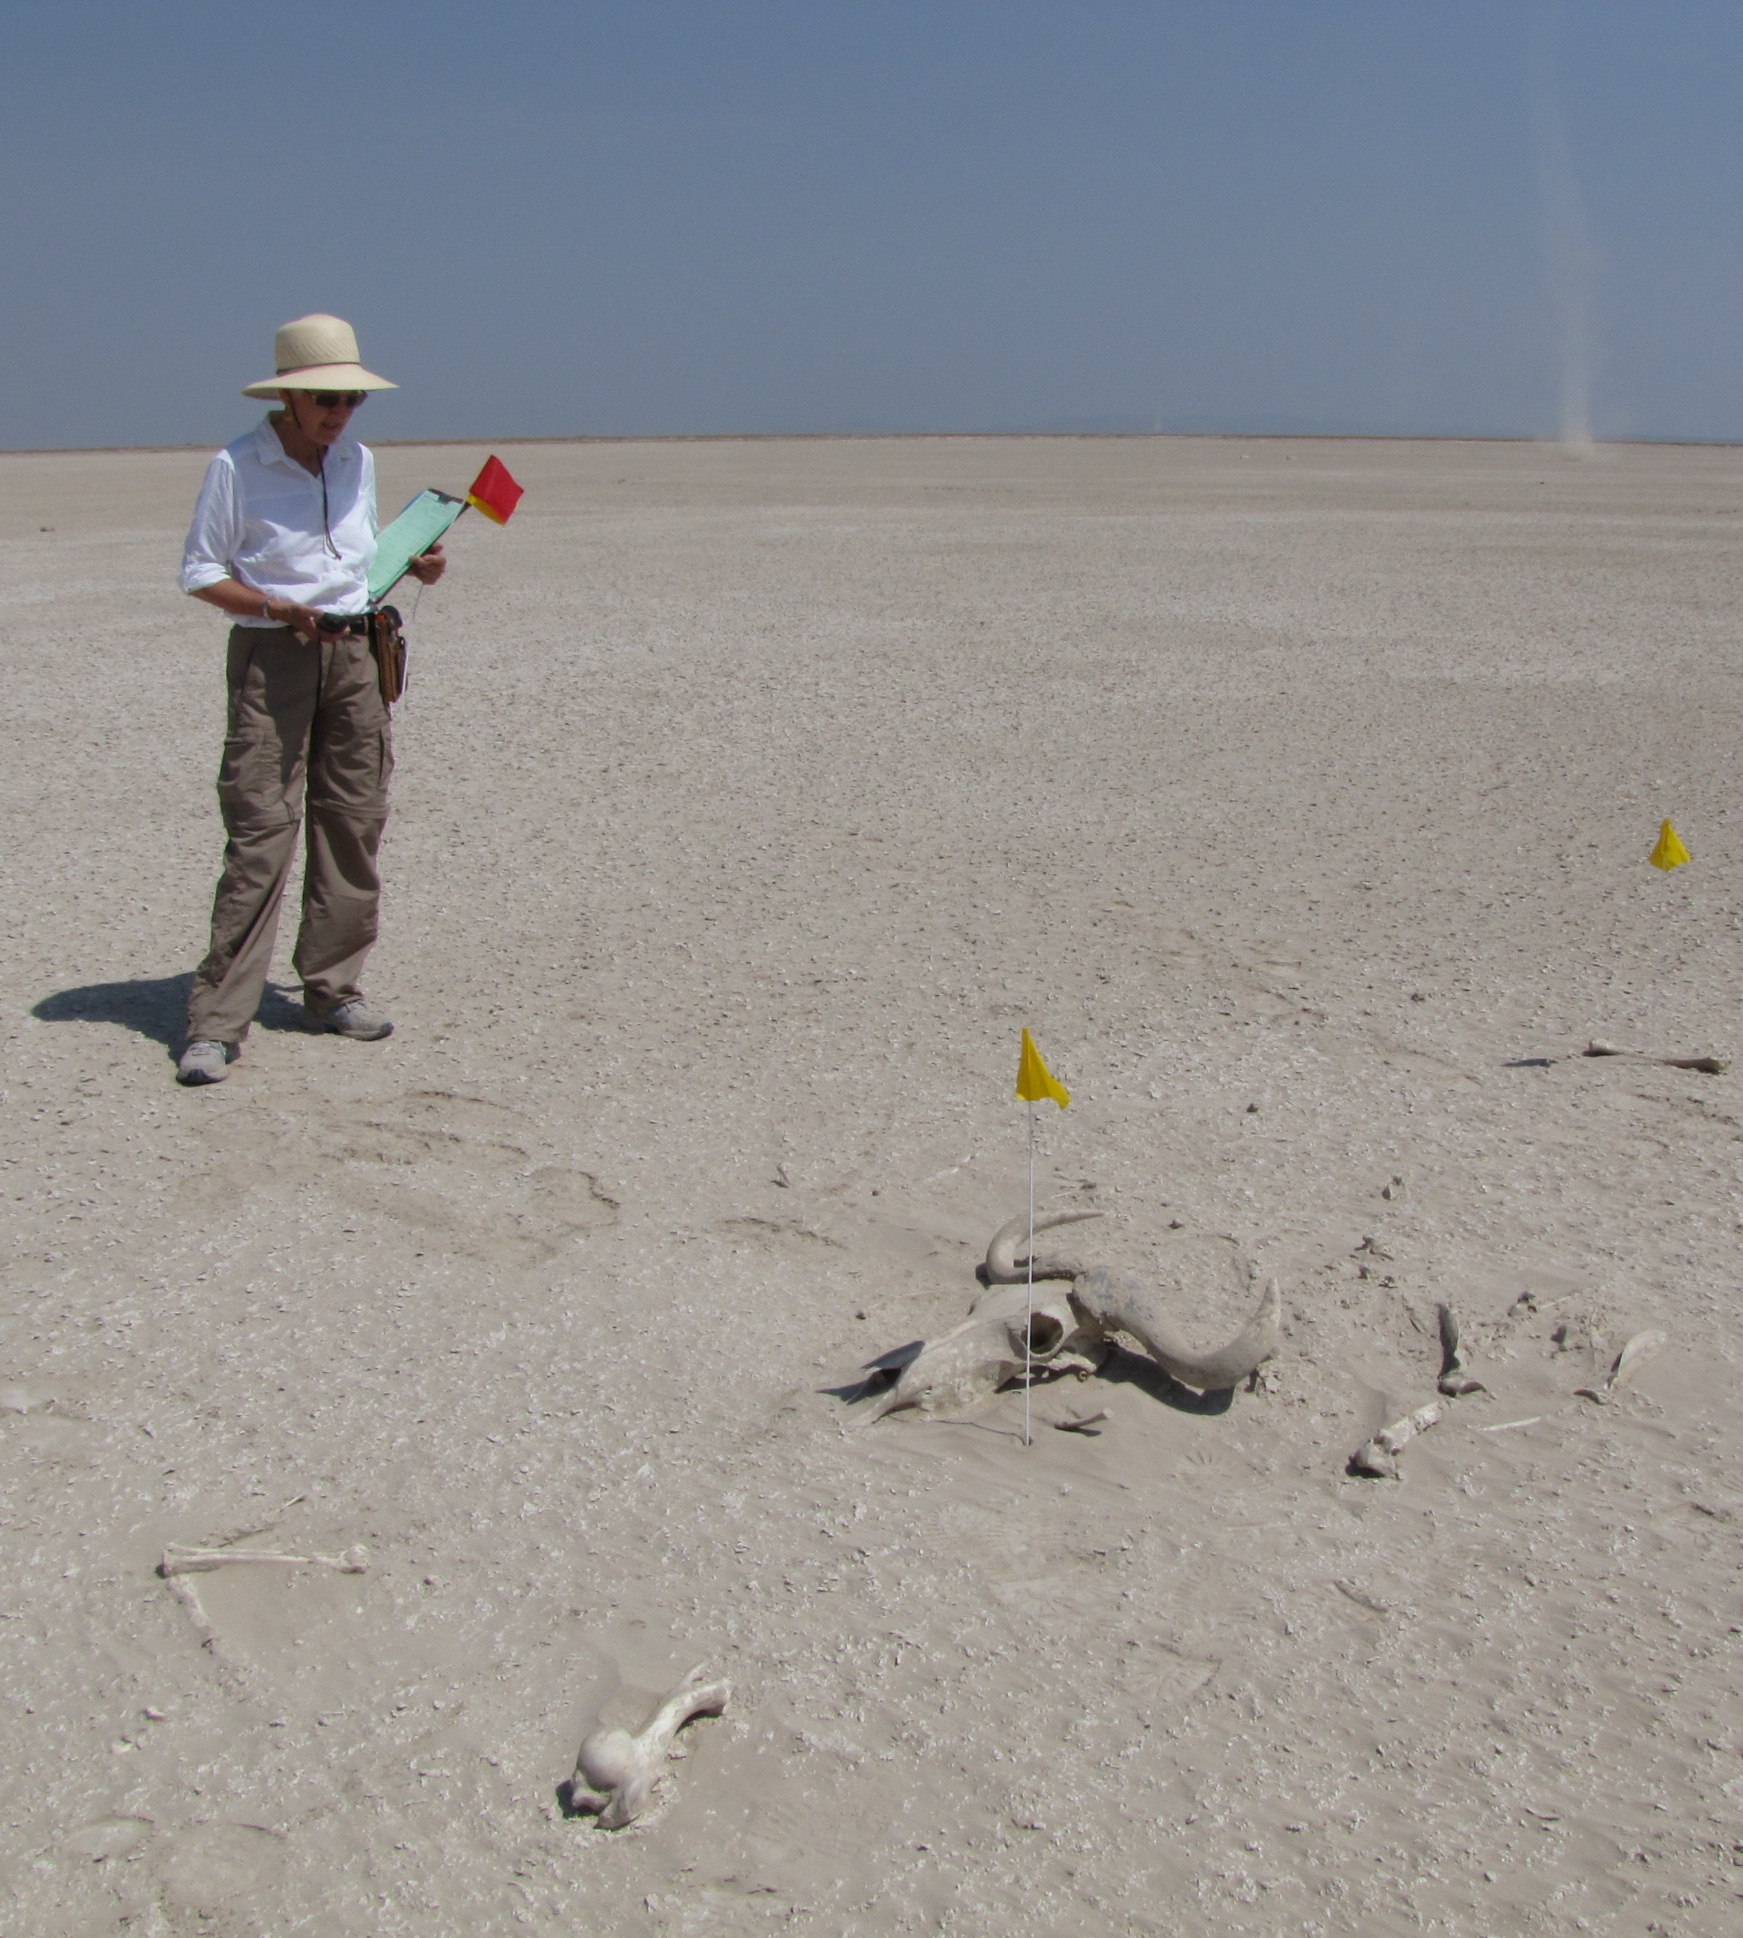 Kay on lakebed.WB skeleton_cropped